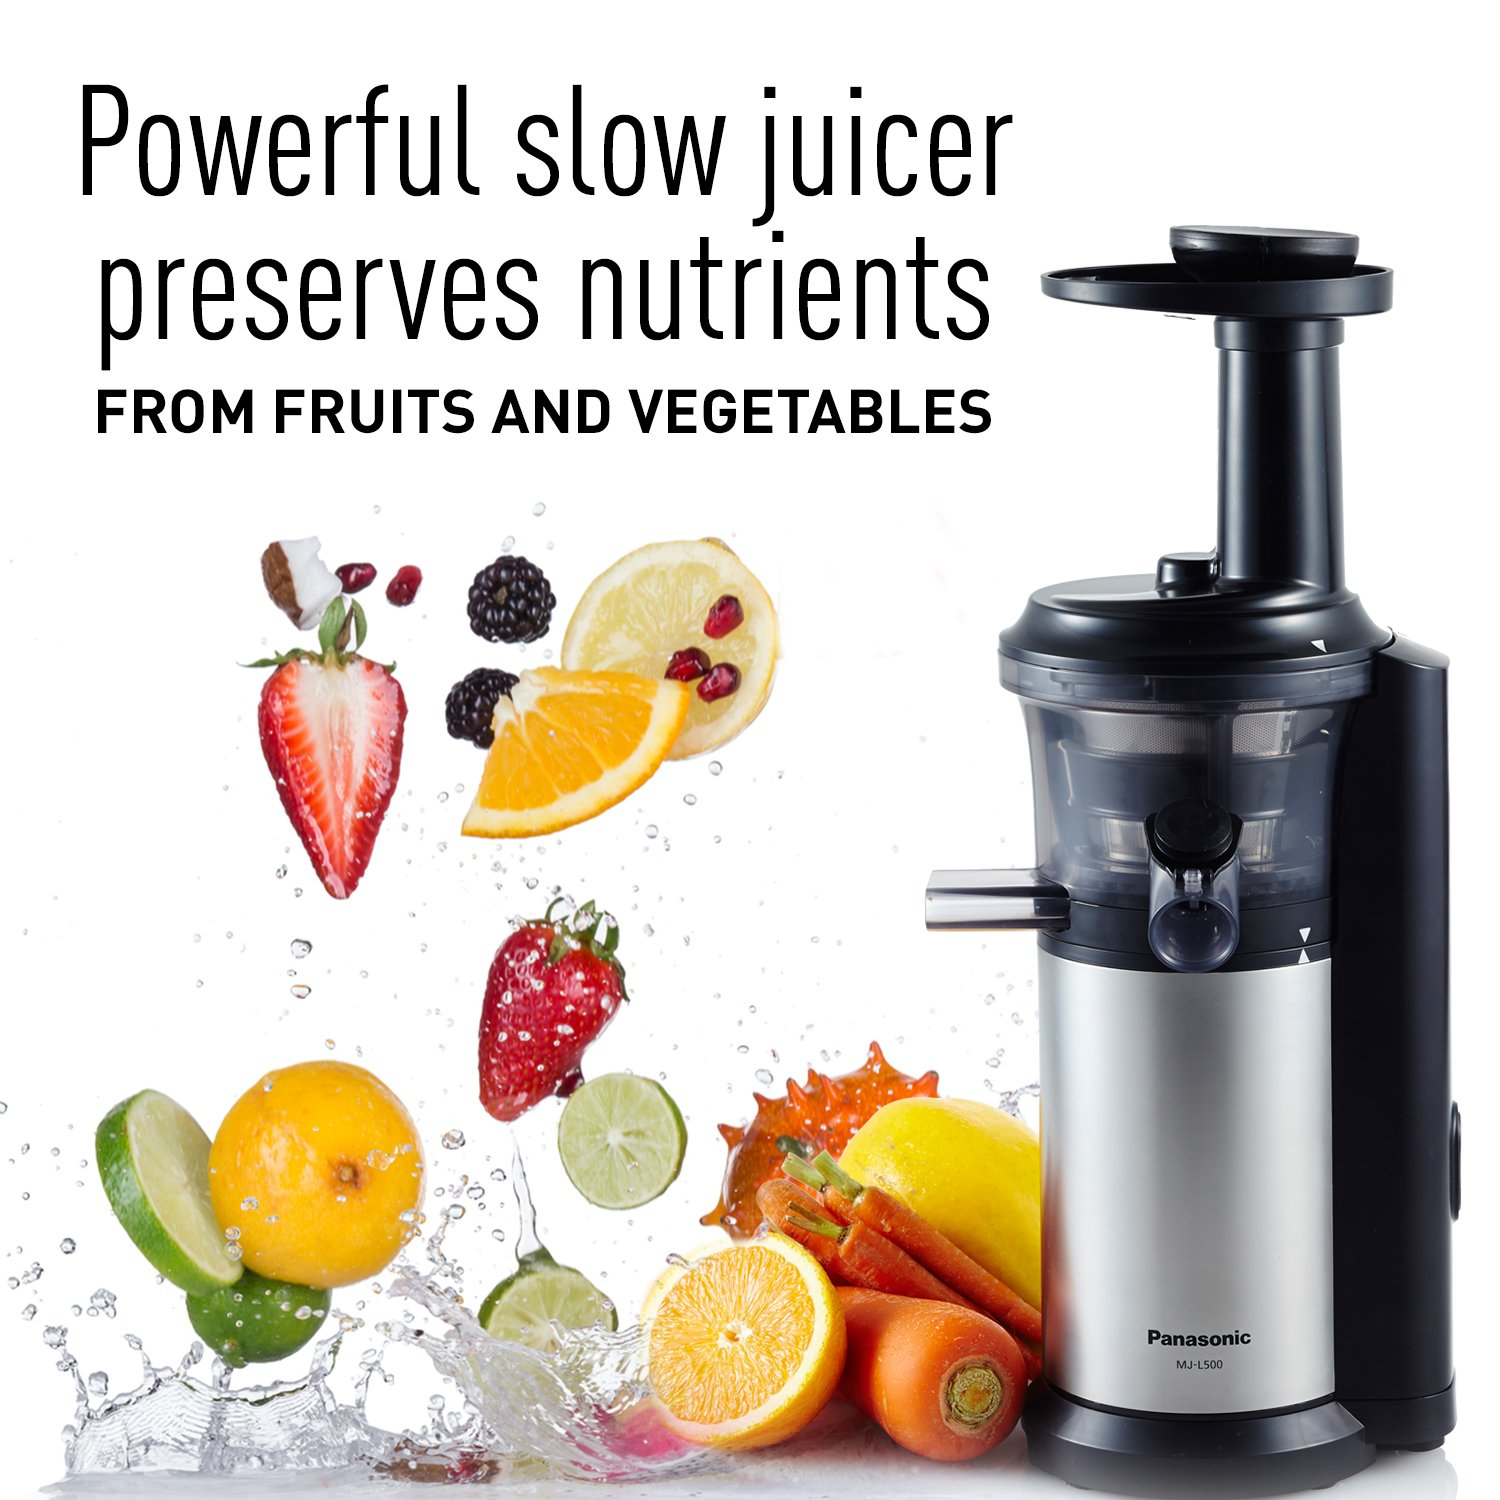 Khind Slow Juicer Vs Panasonic Slow Juicer : Slow Juicer Reviews. Hurom Slow Juicer. Juices. . Kuvings Nje3580u Masticating Slow Juicer ...